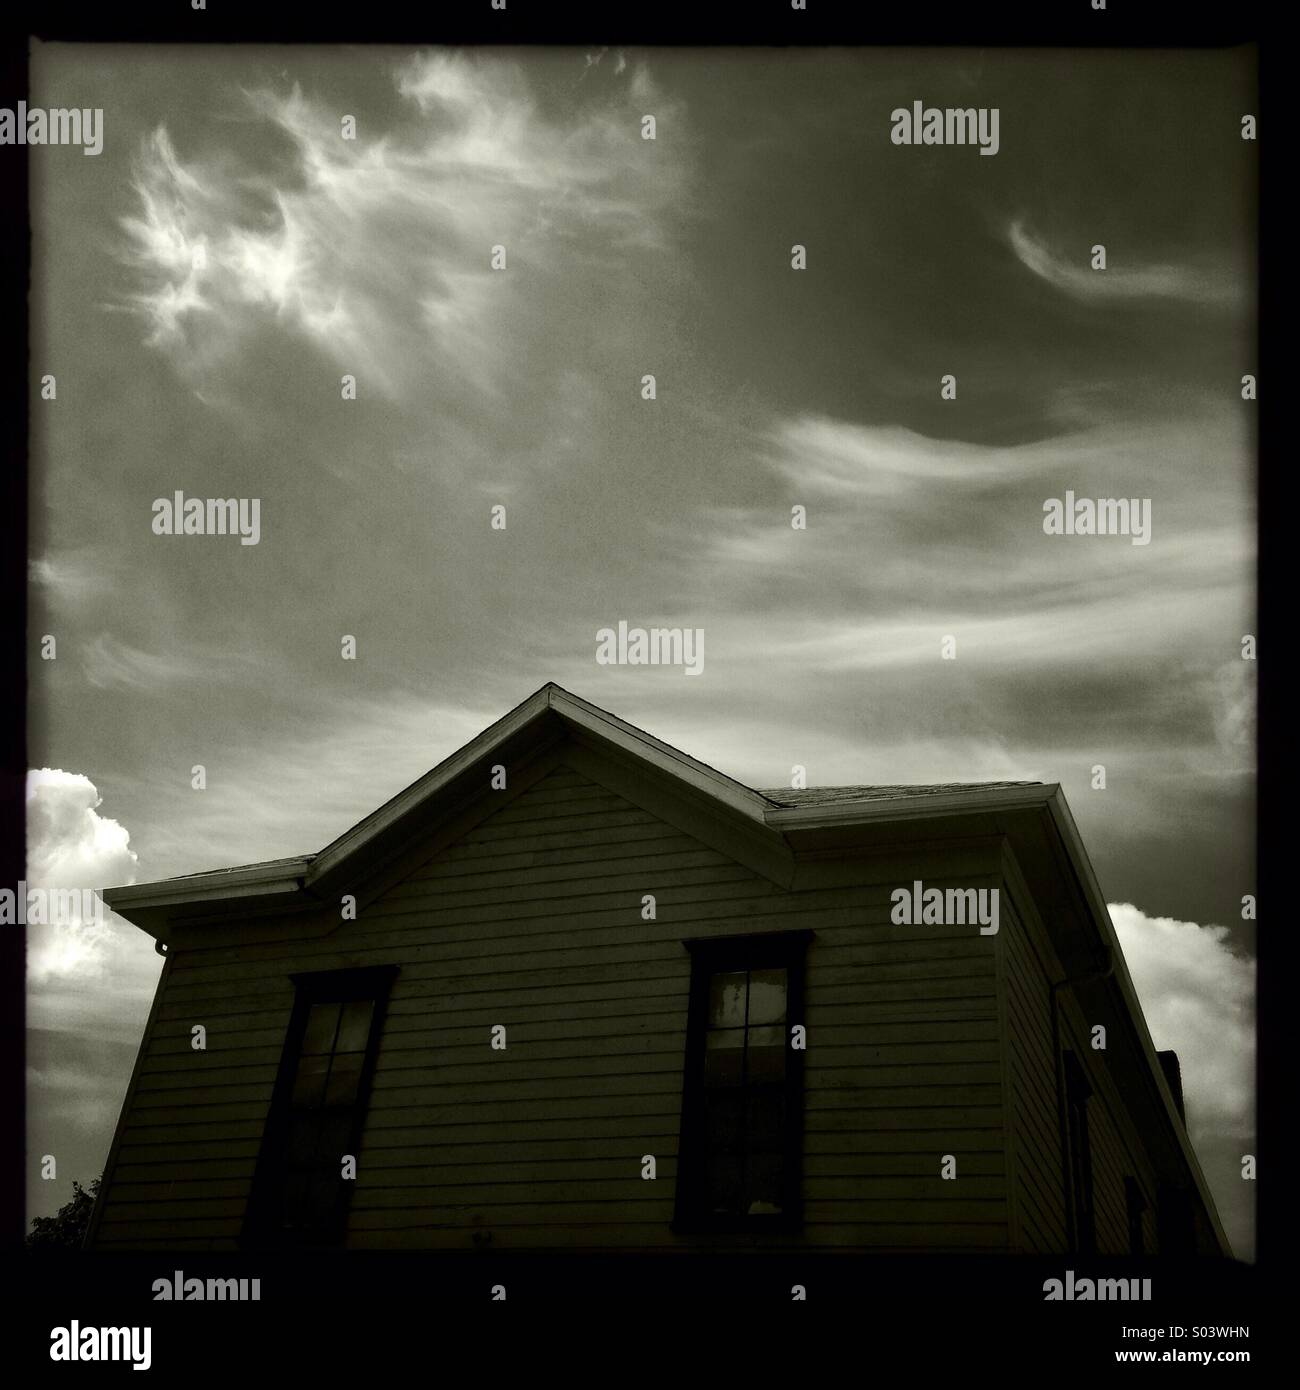 Black and white creepy looking building with dramatic clouds in the sky. - Stock Image